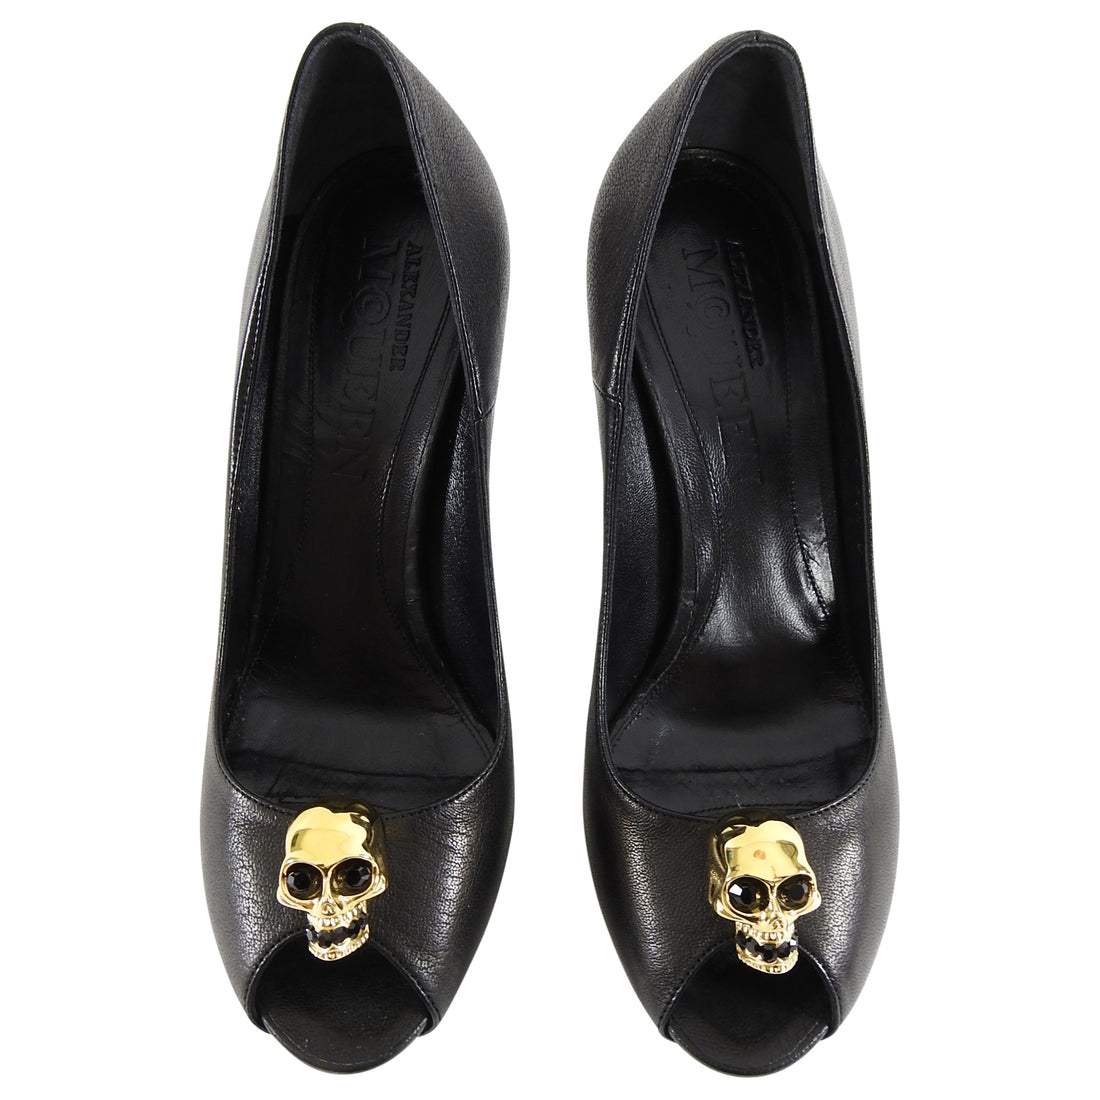 Alexander McQueen Black Leather Gold Skull Pump Heels - 38.5